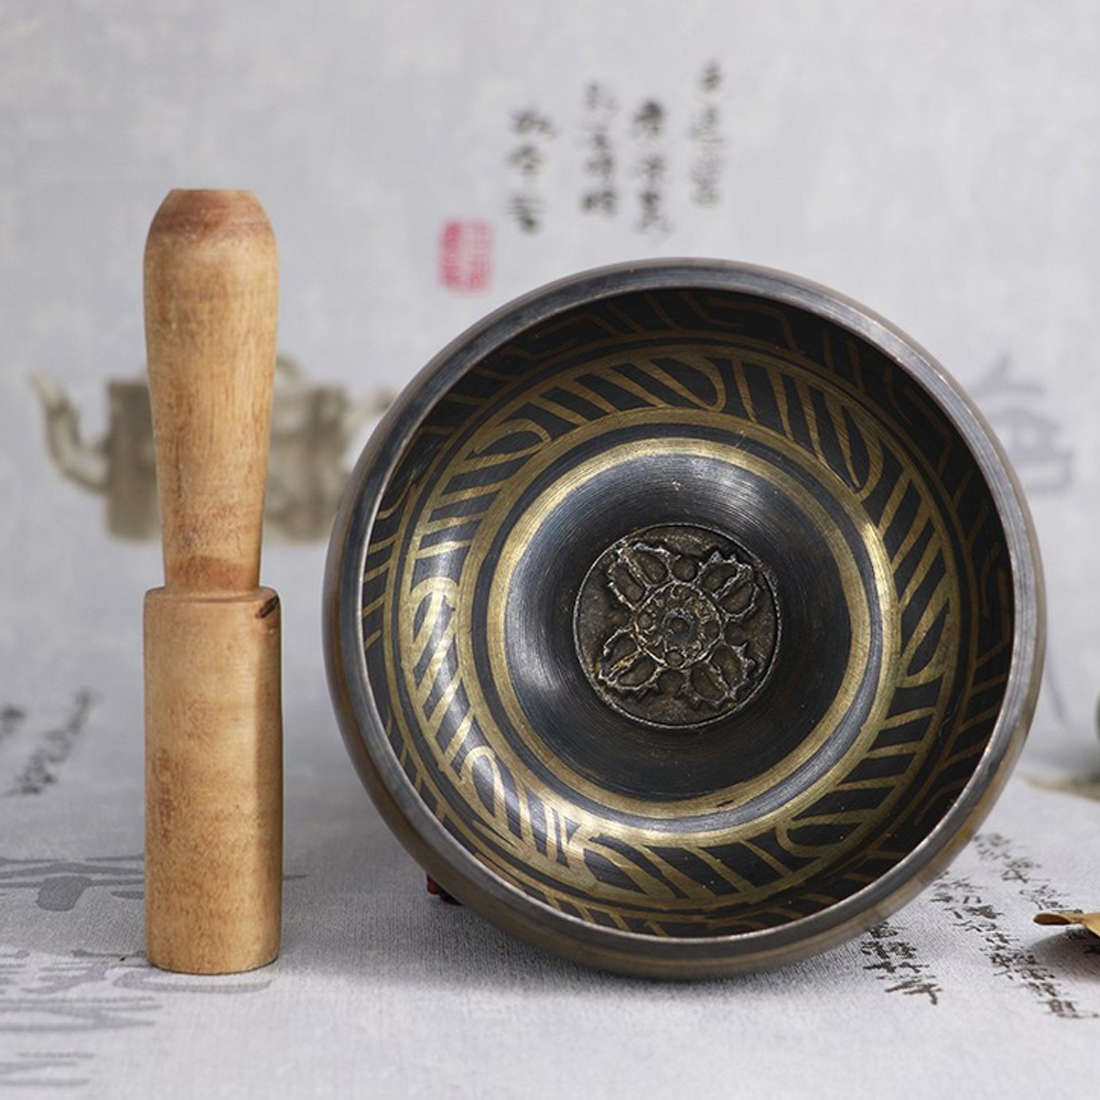 Tibetan Singing Bowl (8-17.5 cm) 1